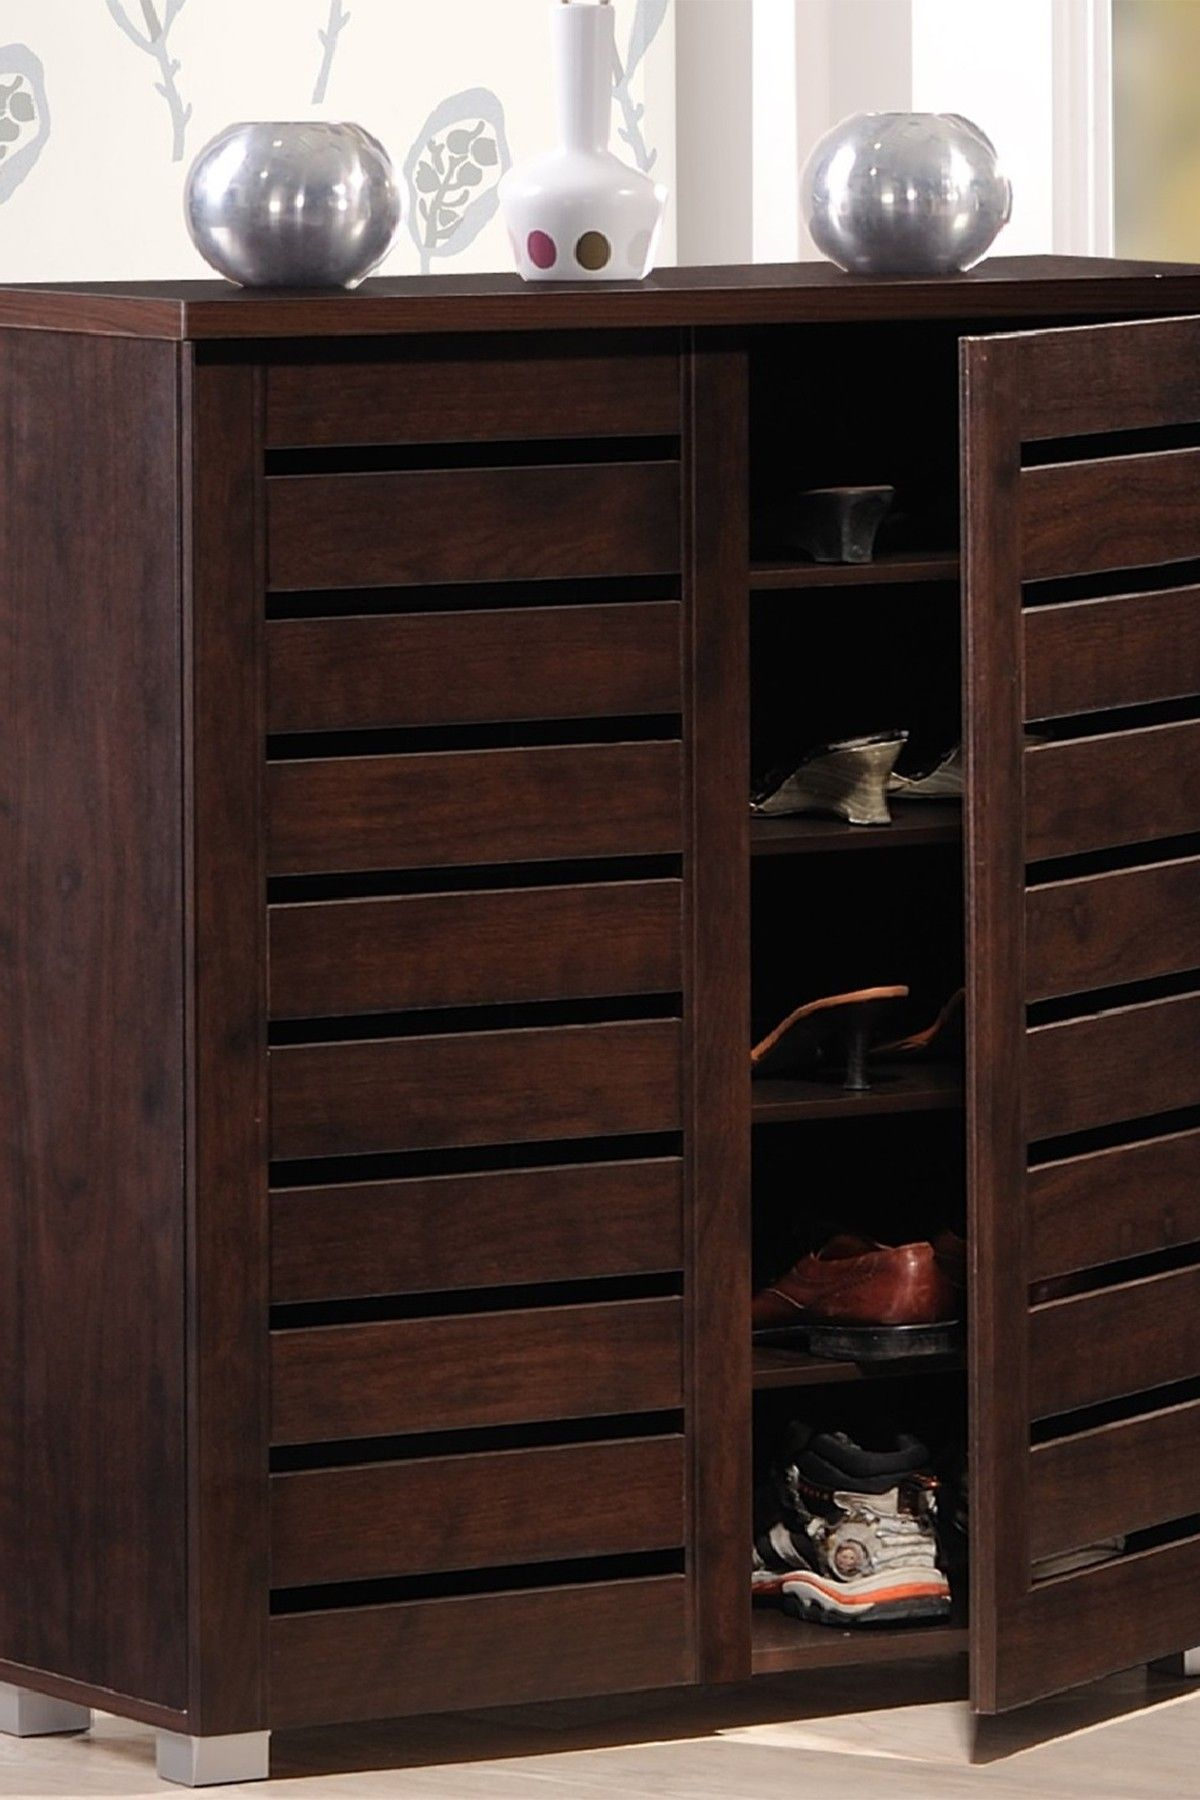 cabinets ikea shoe within amazon info cabinet storage image l